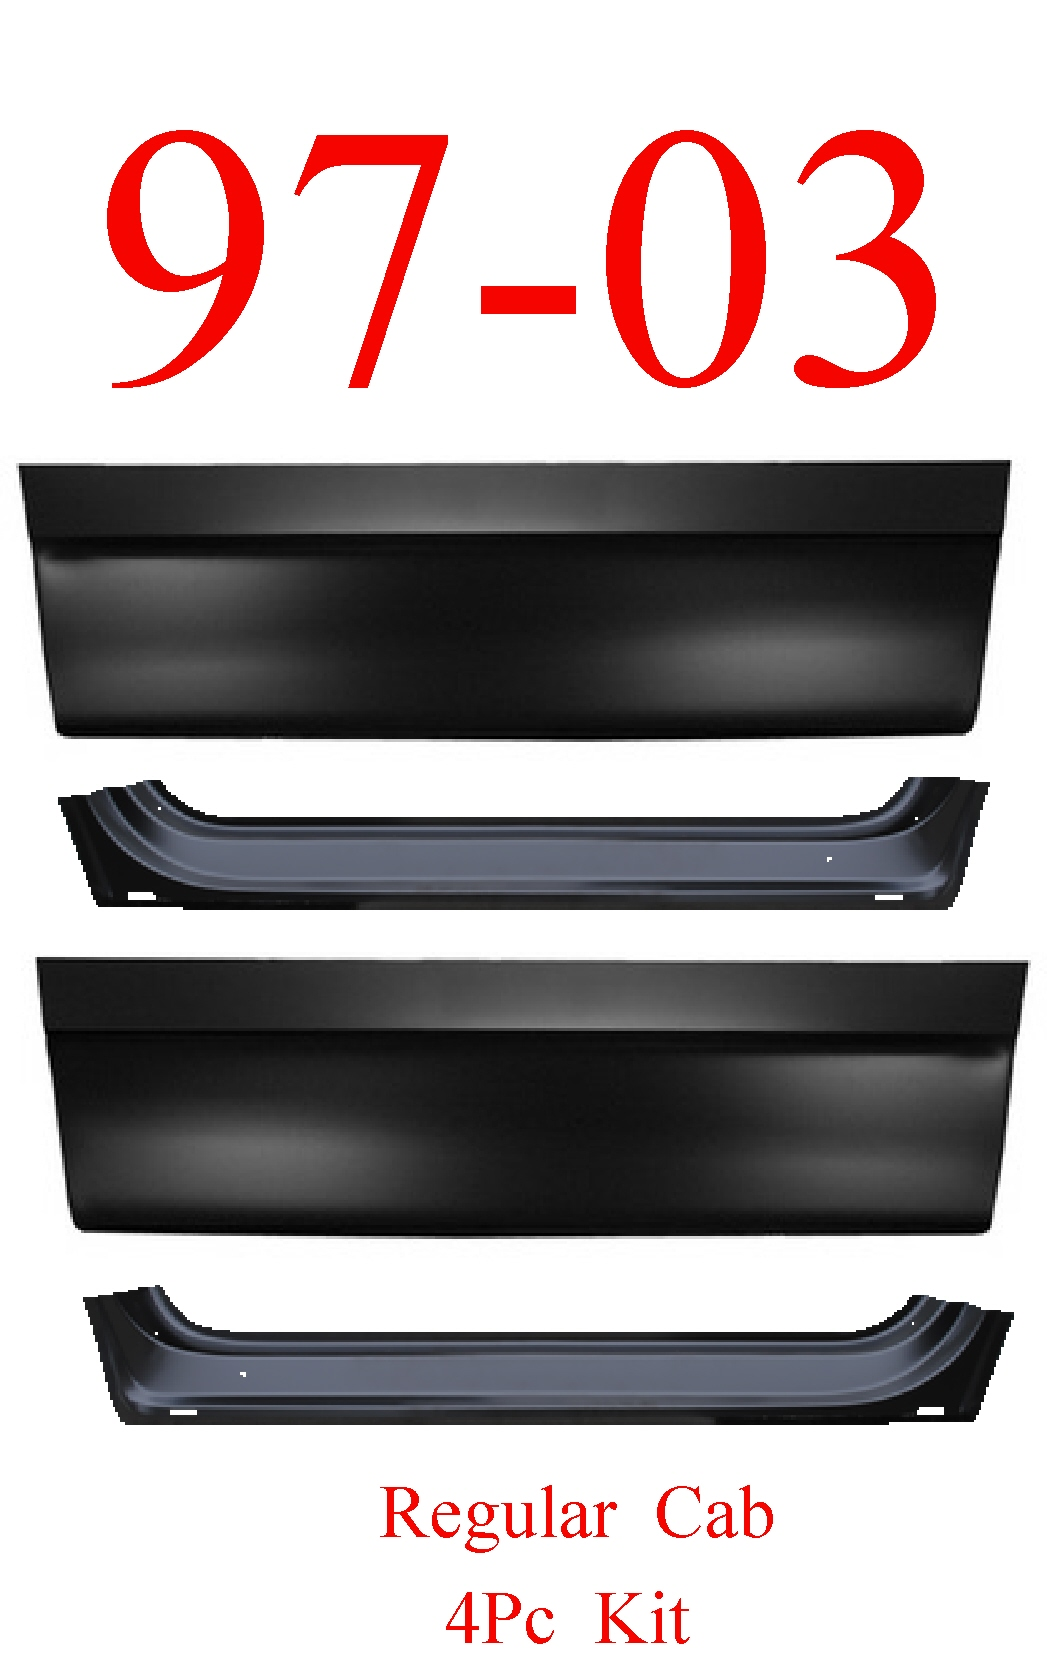 97-03 F150 Regular Cab 4Pc Inner & Outer Door Bottom Kit